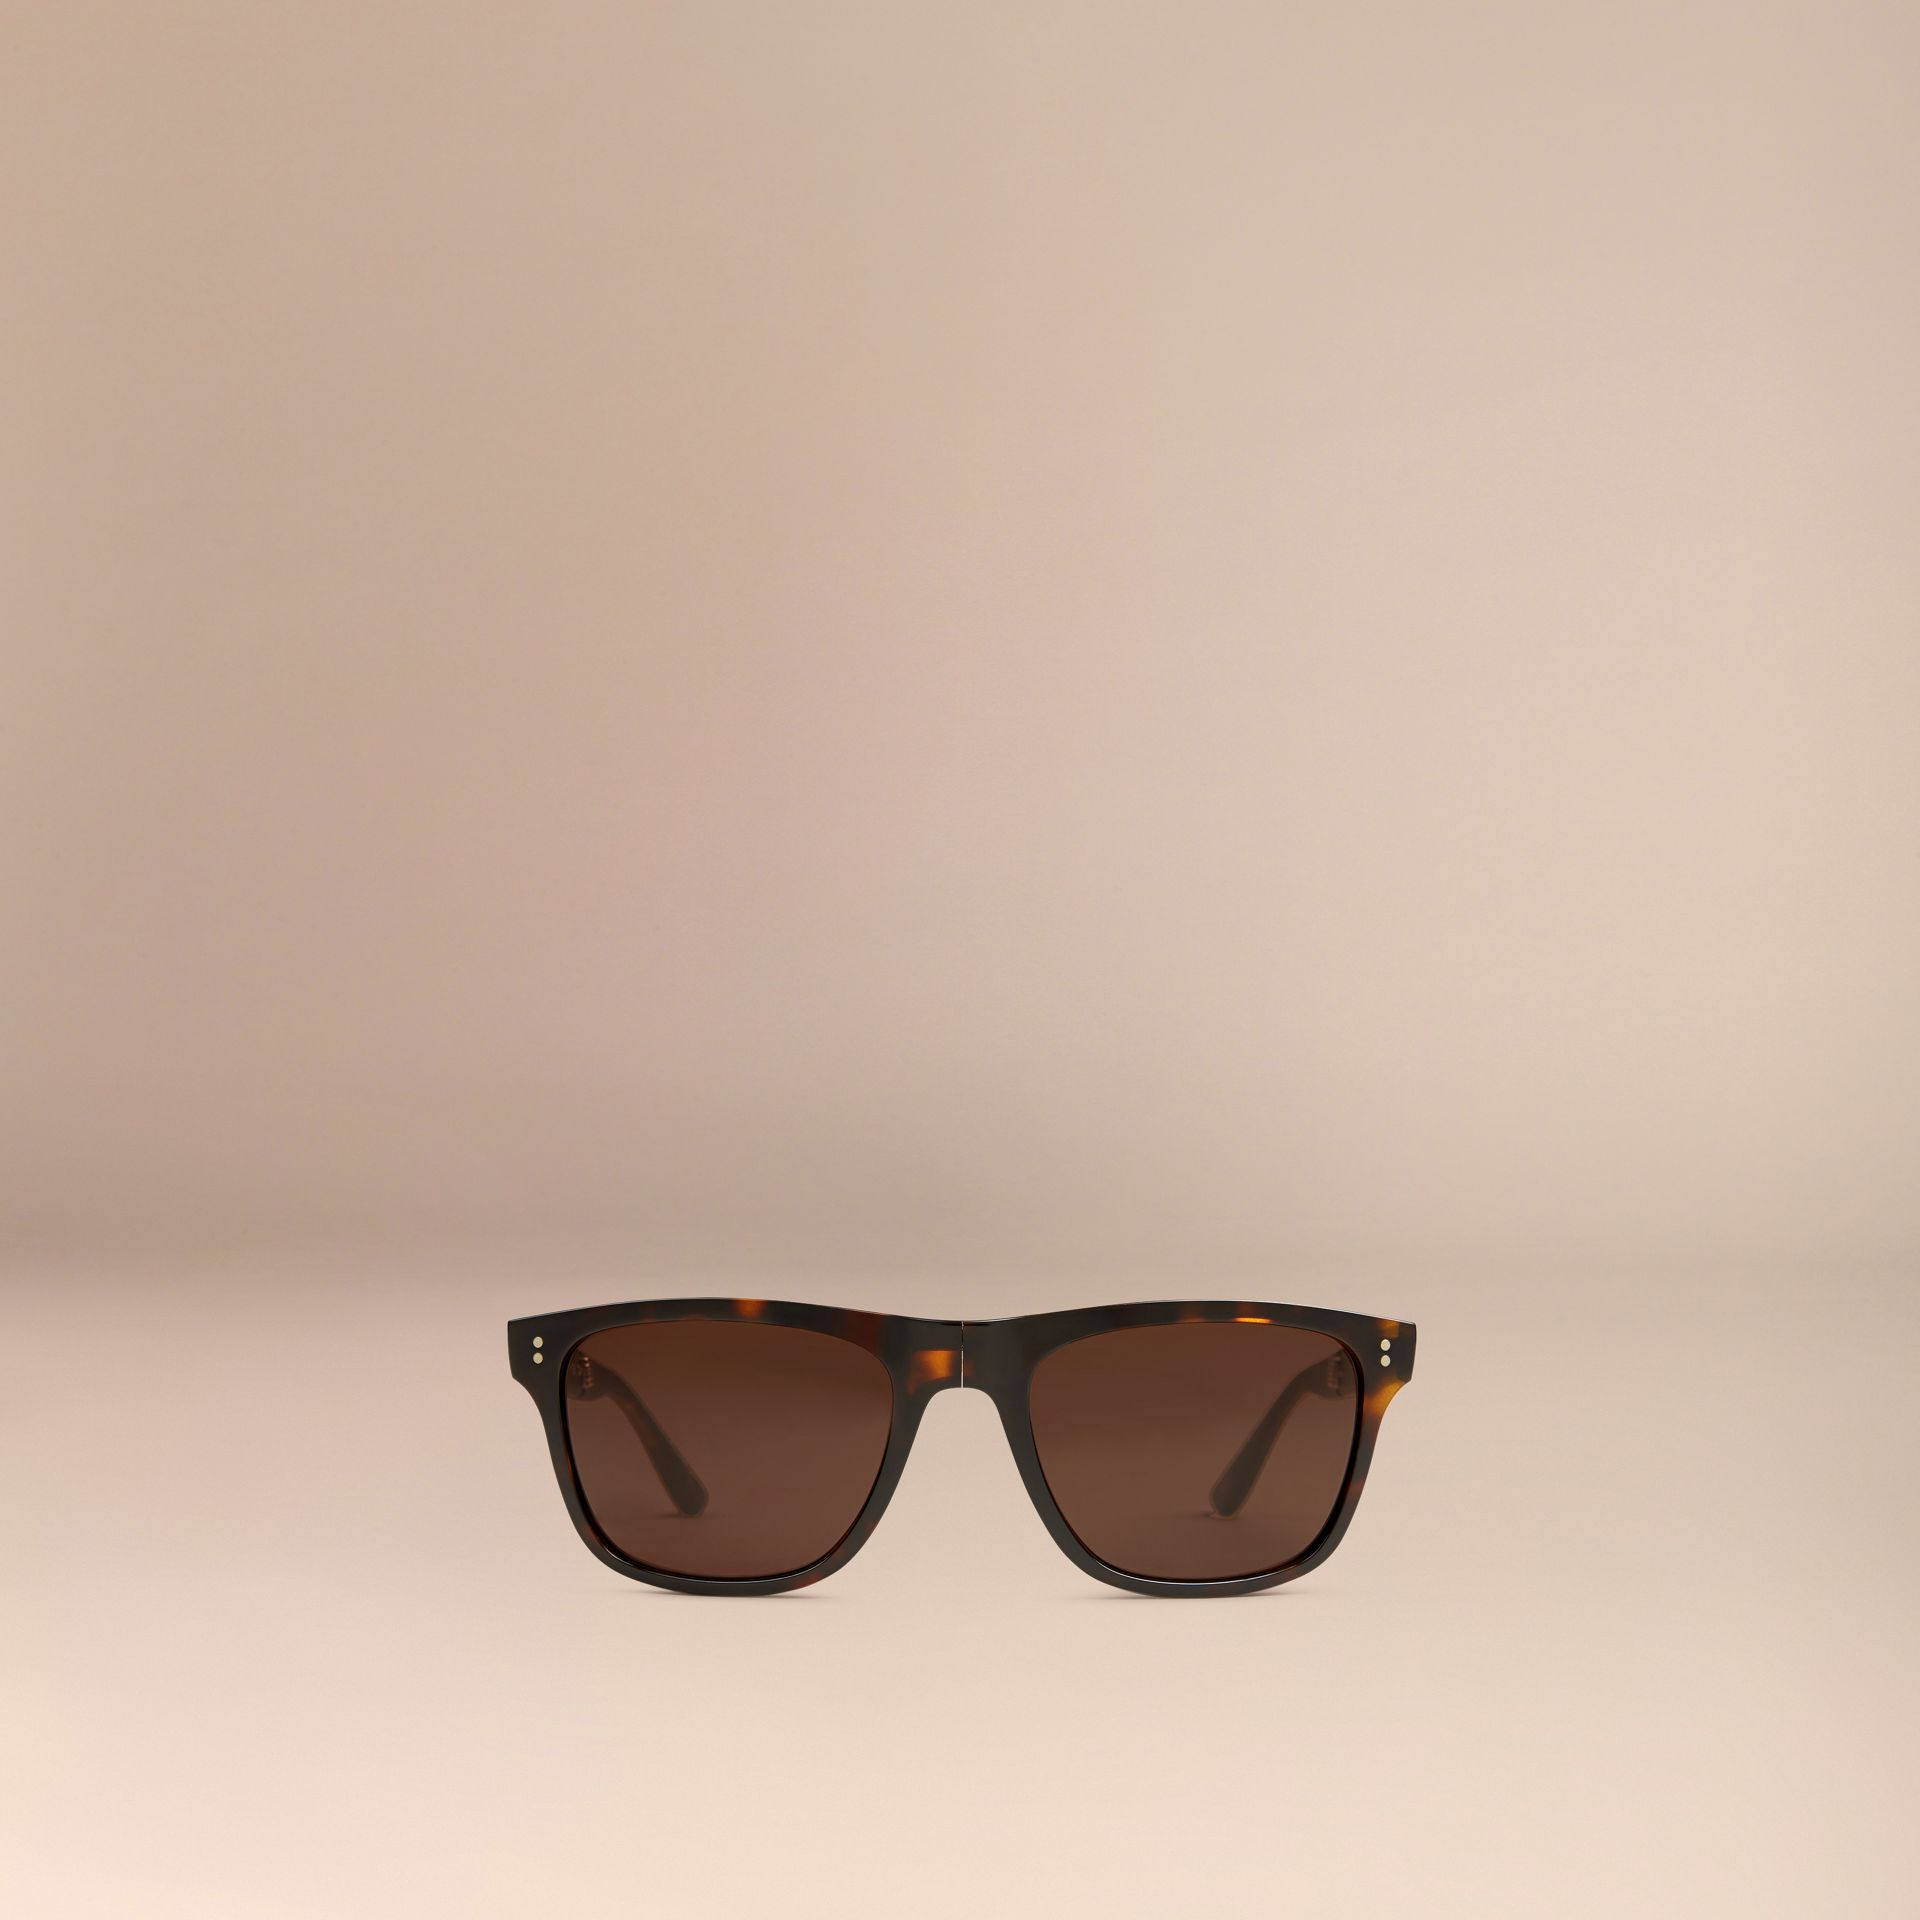 Folding Rectangular Frame Sunglasses in Dark Brown - Men | Burberry - gallery image 3